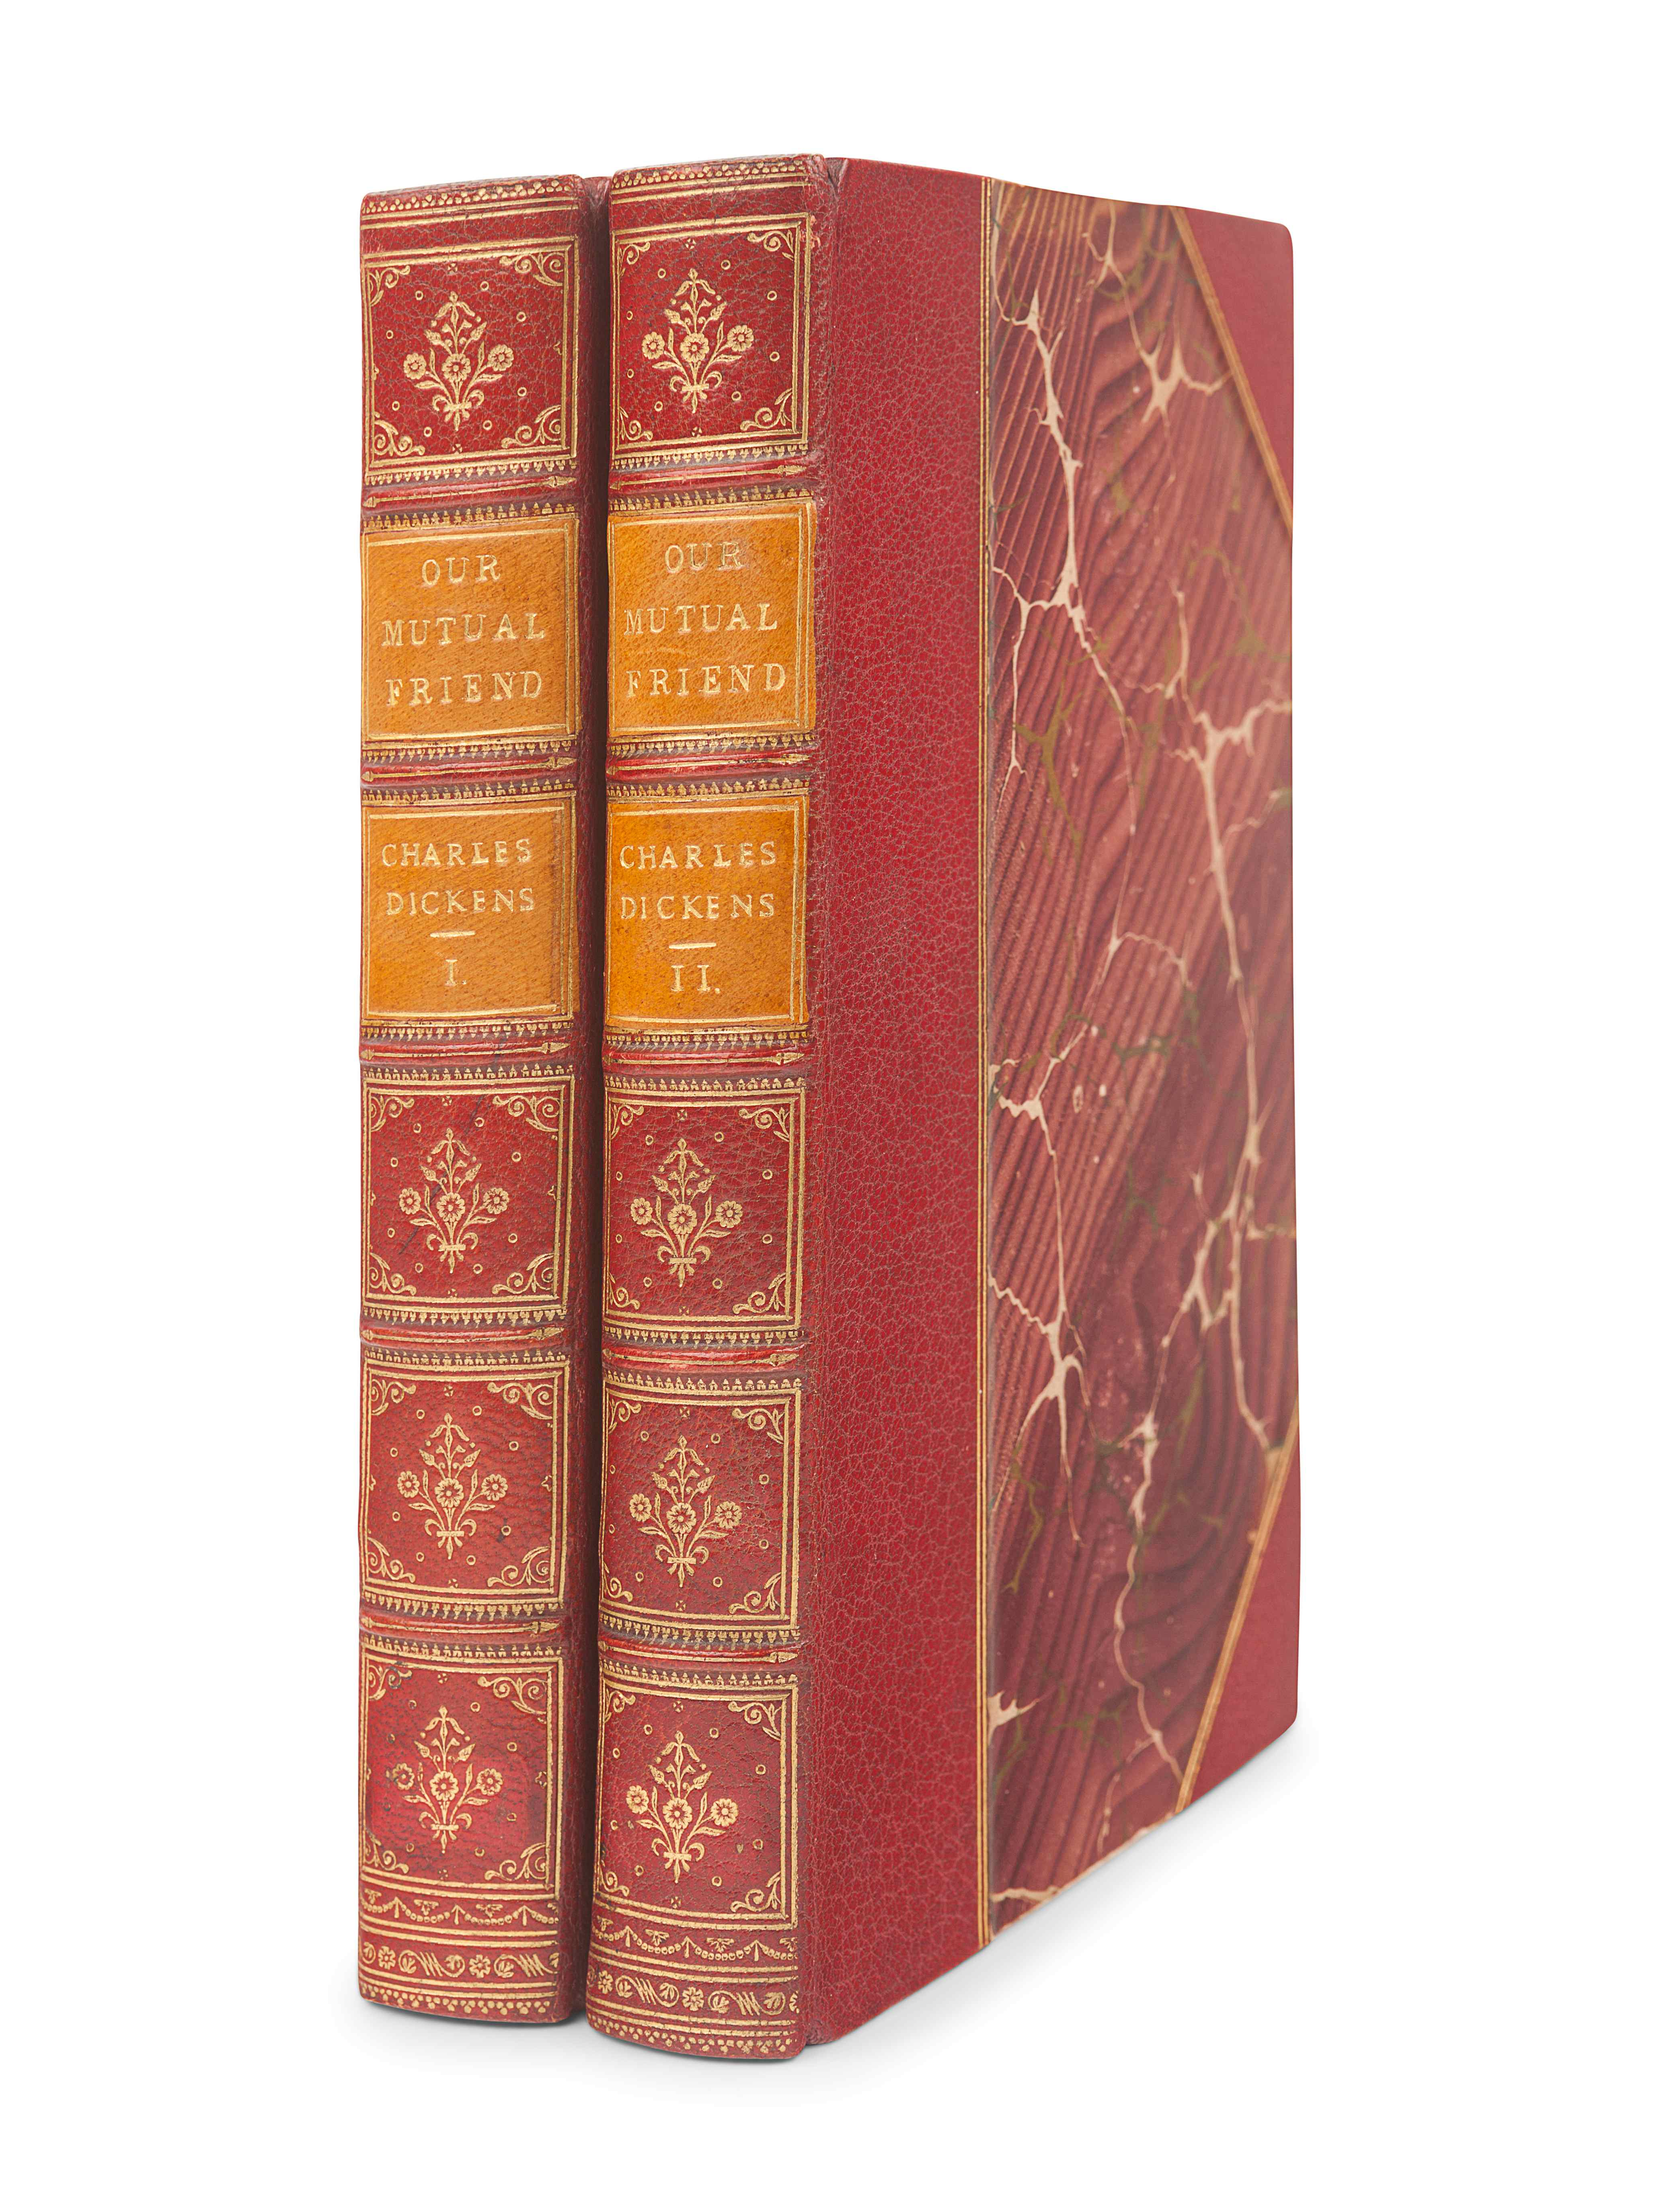 DICKENS, Charles (1812-1870). Our Mutual Friend. London: Chapman & Hall, 1865. - Image 2 of 3